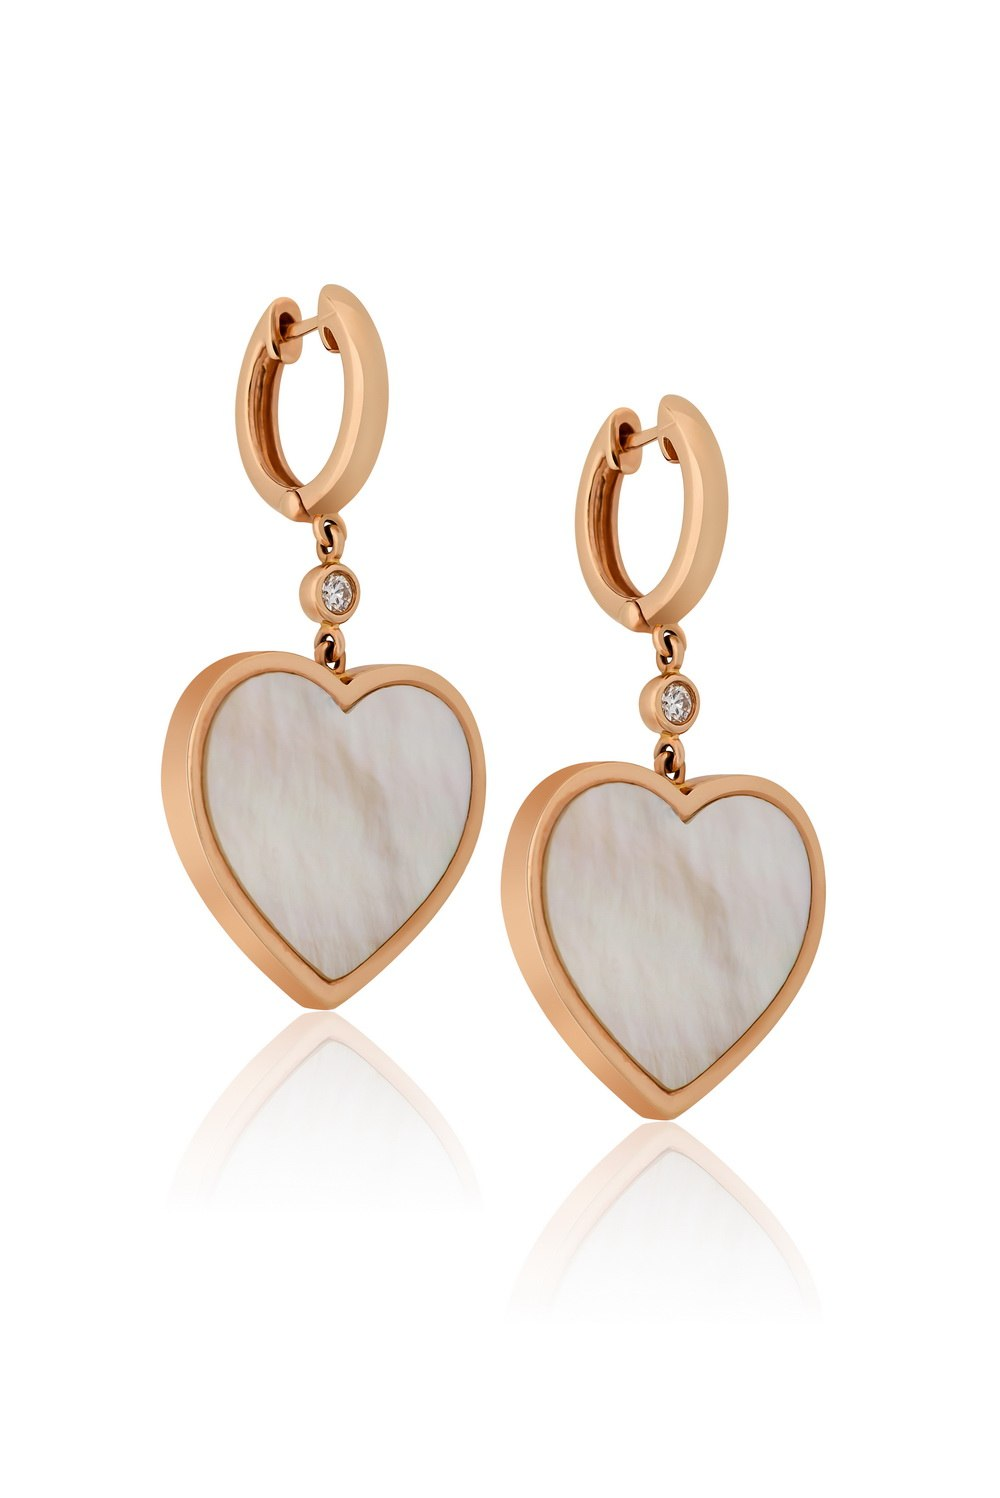 KESSARIS Heart Mother of Pearl Earrings SKE161404